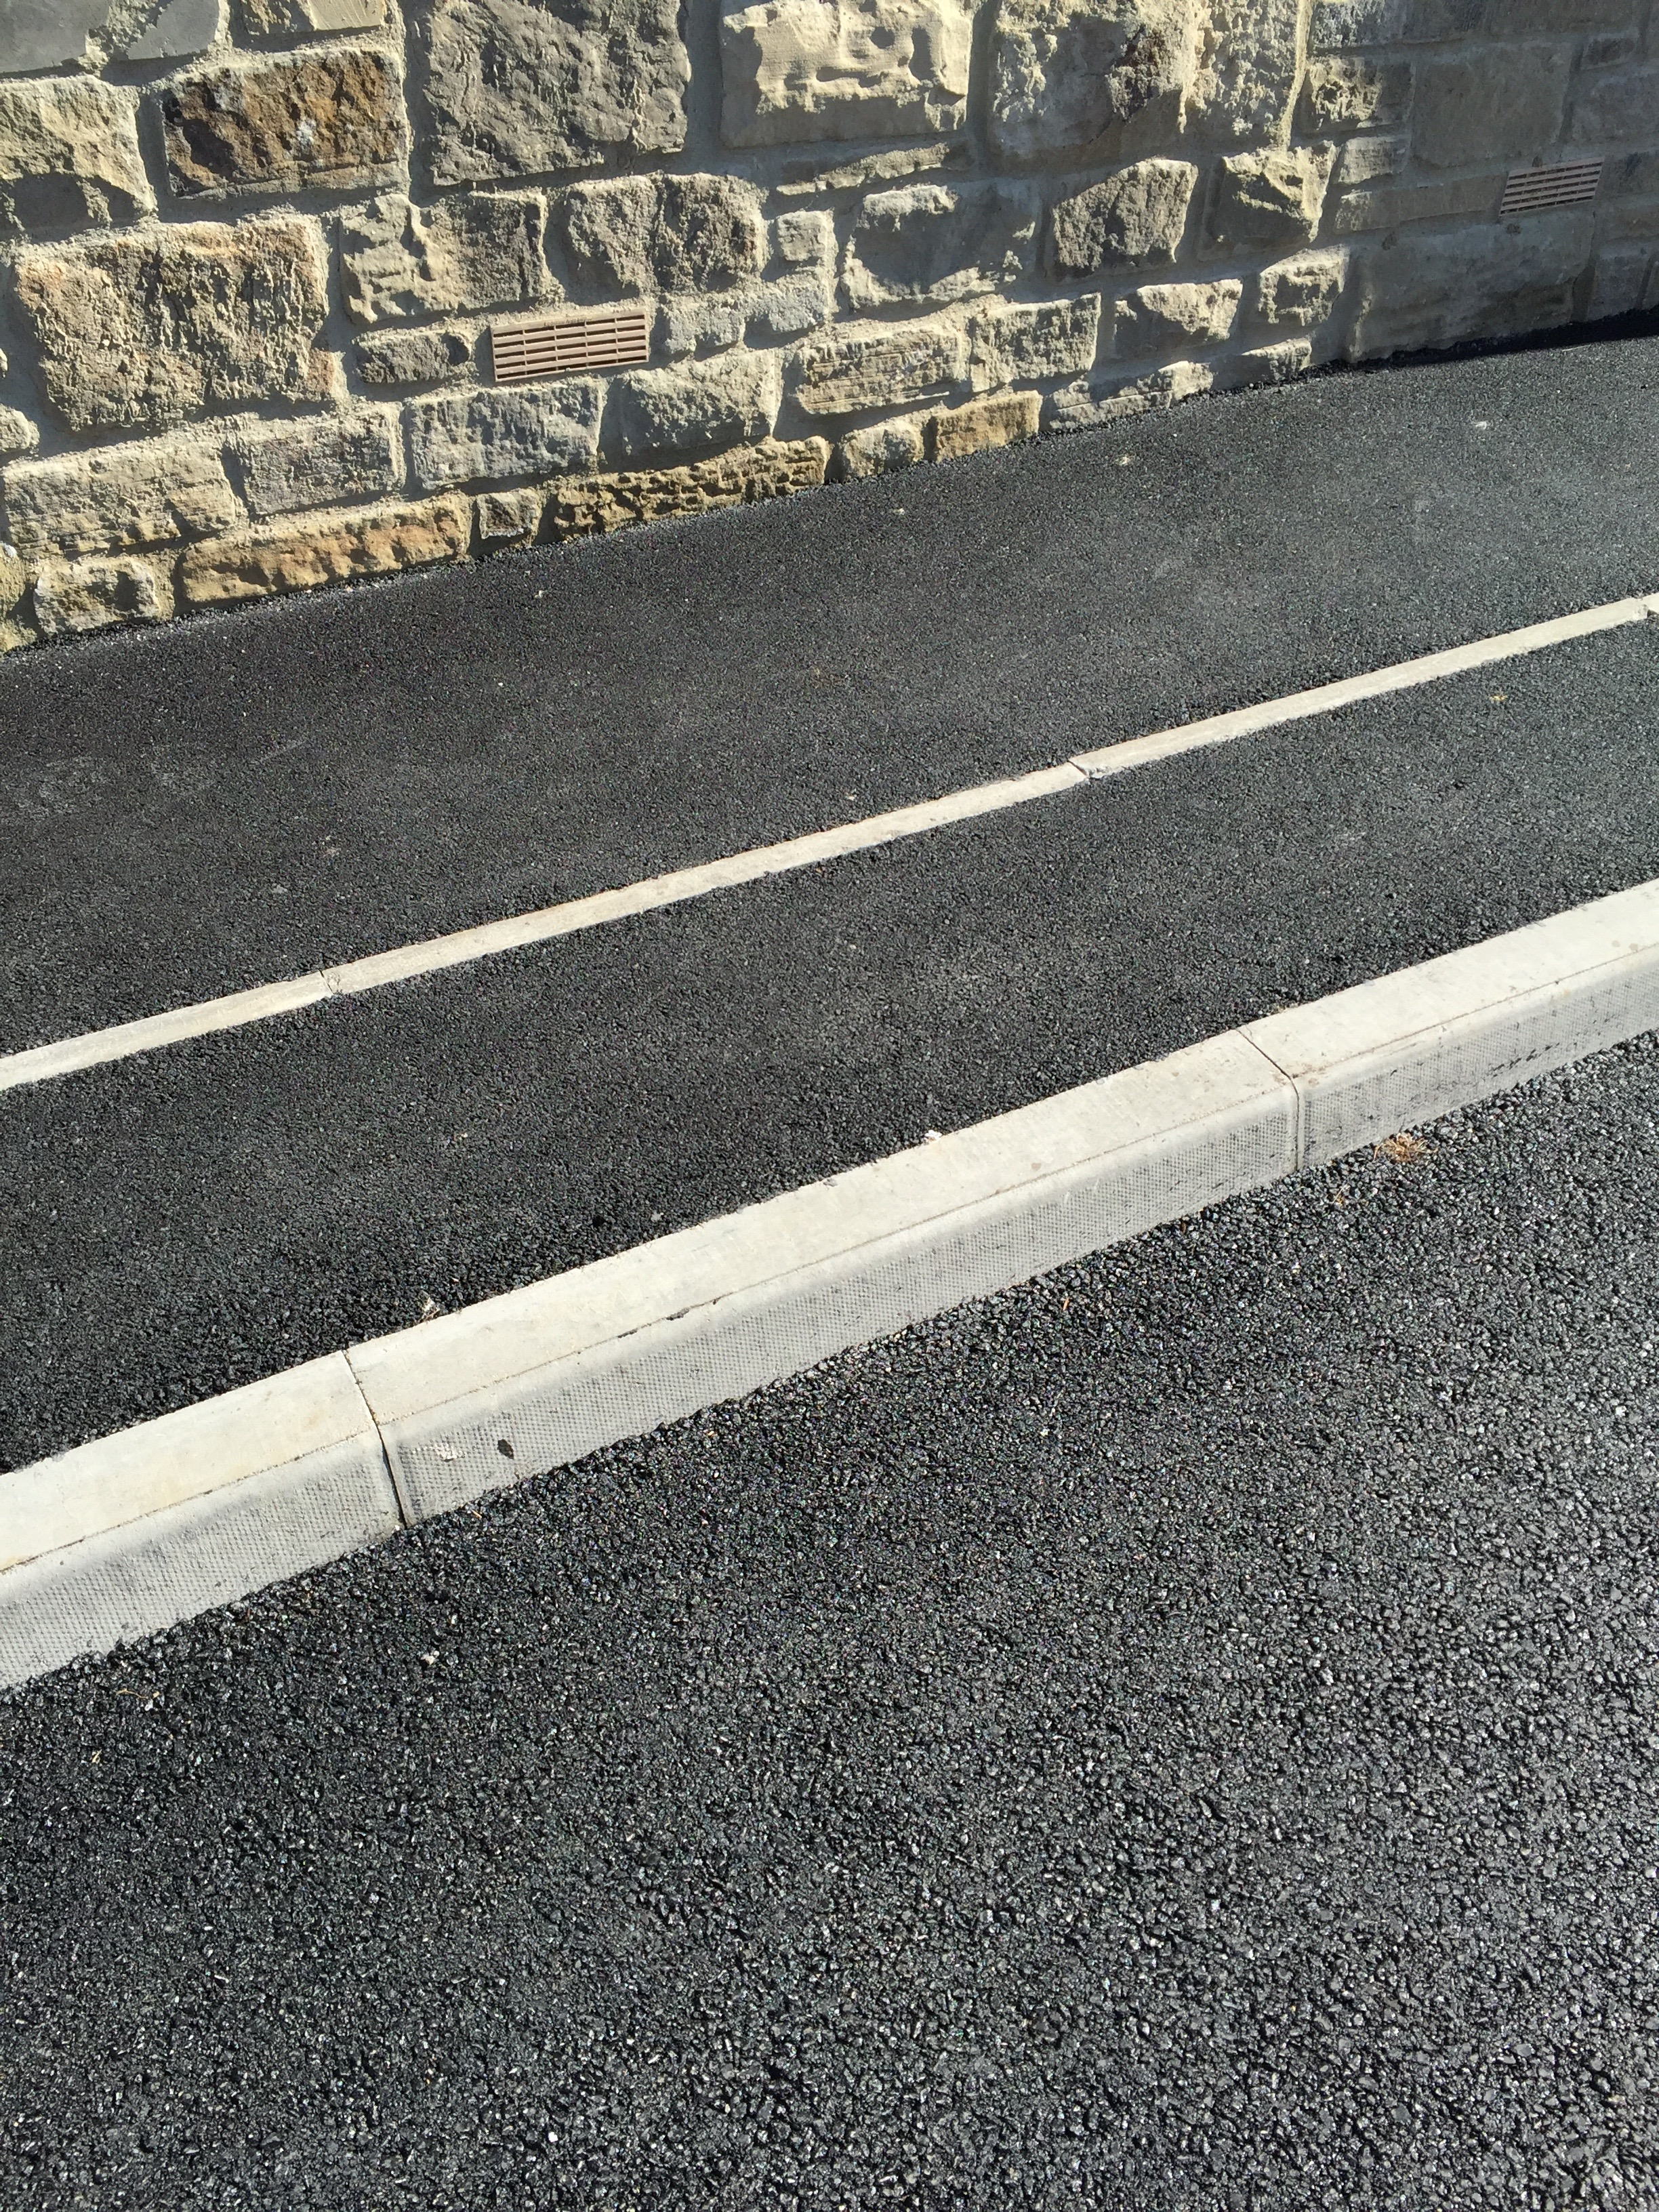 A Kerb Kerbstones and haunching